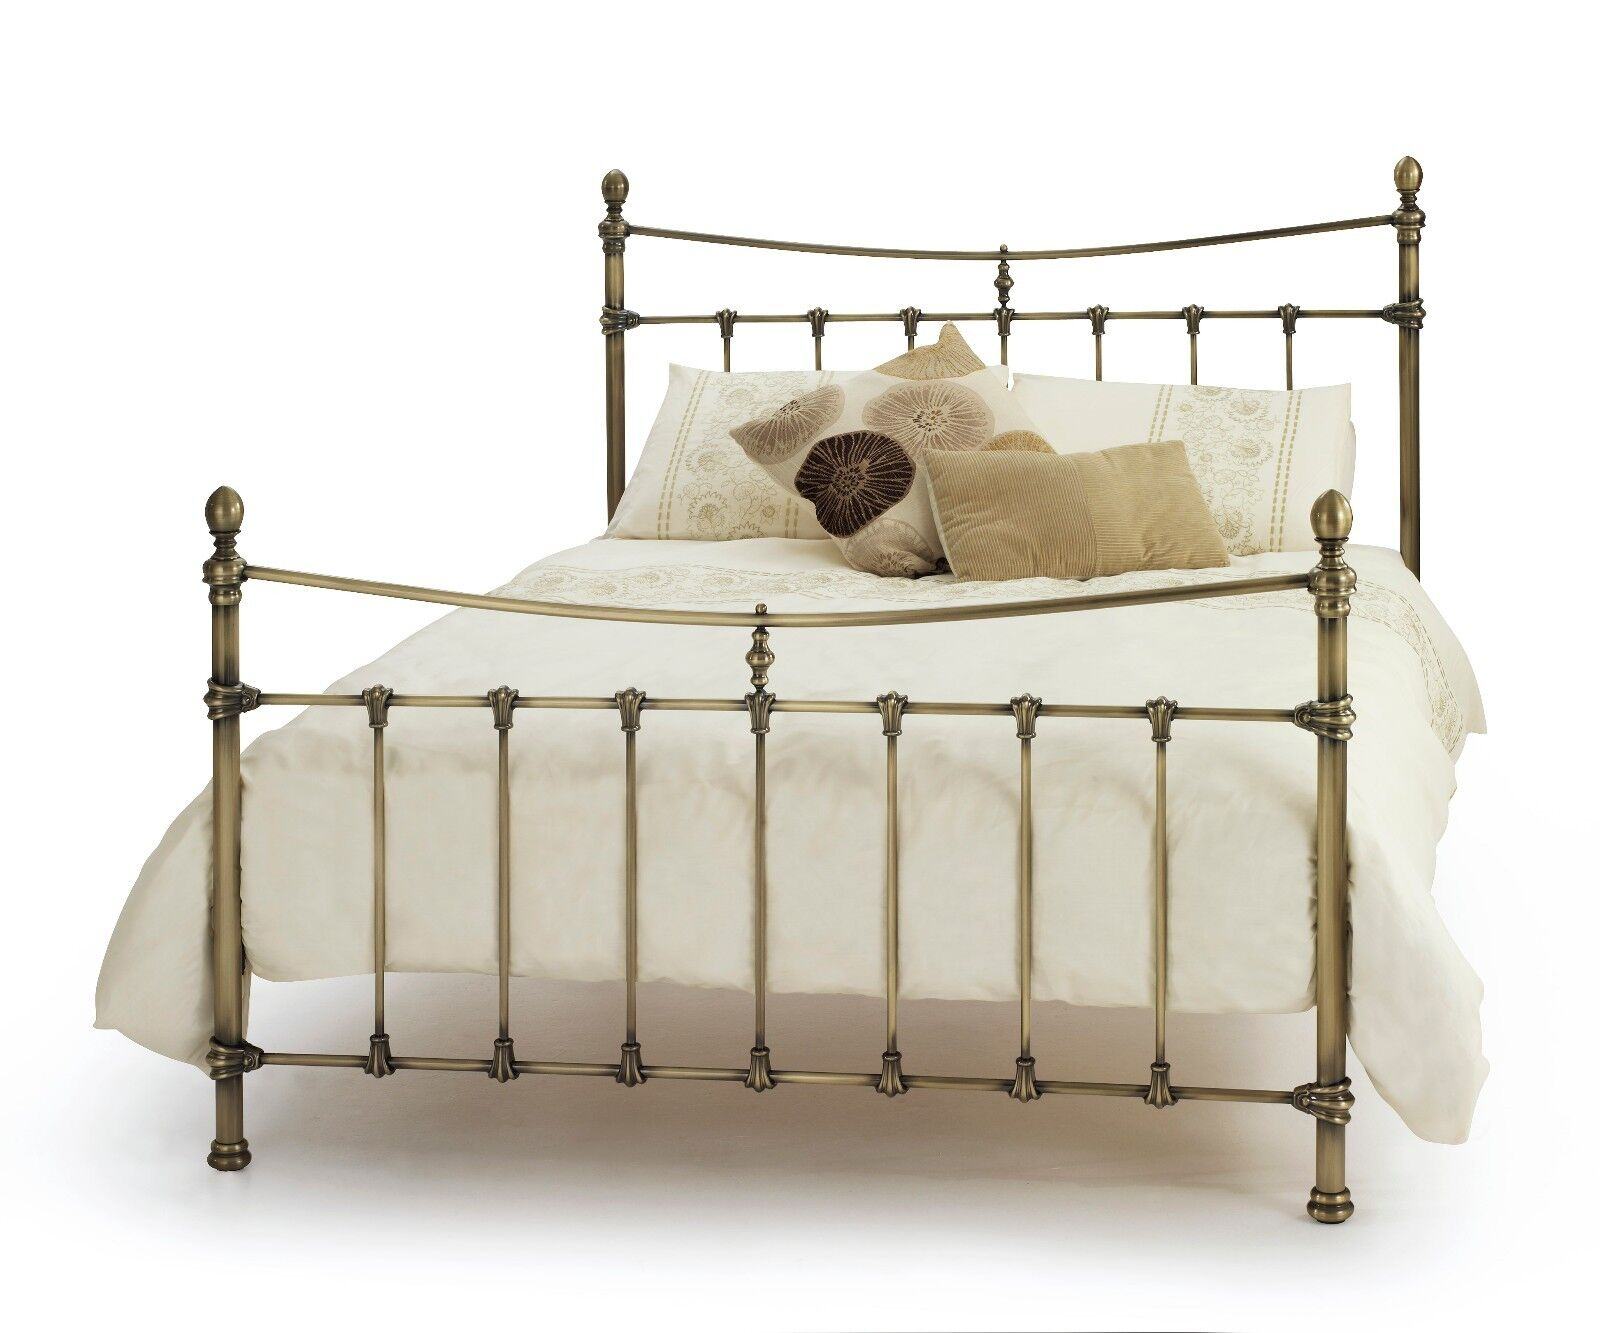 estelle georgian quality metal bed frame in antique brass 4ft6 double 5ft king ebay. Black Bedroom Furniture Sets. Home Design Ideas